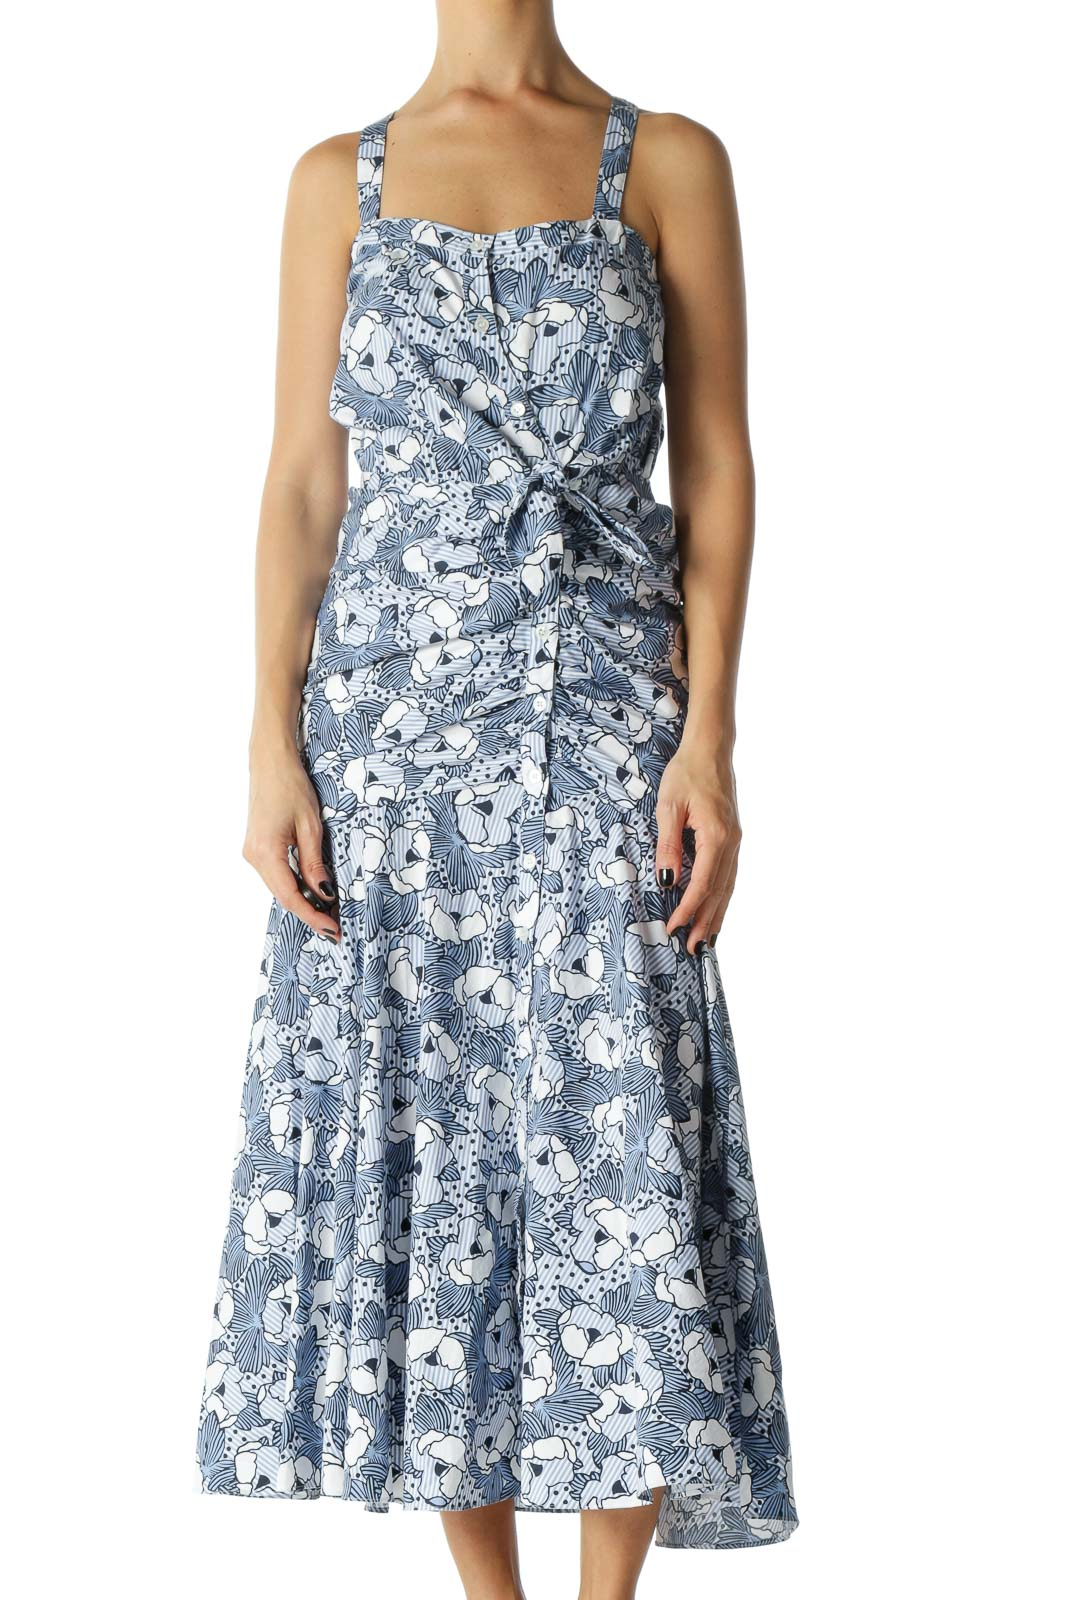 Blue and White Floral , Polka-Dot, and Stiped Print Spaghetti Strap Maxi Dress